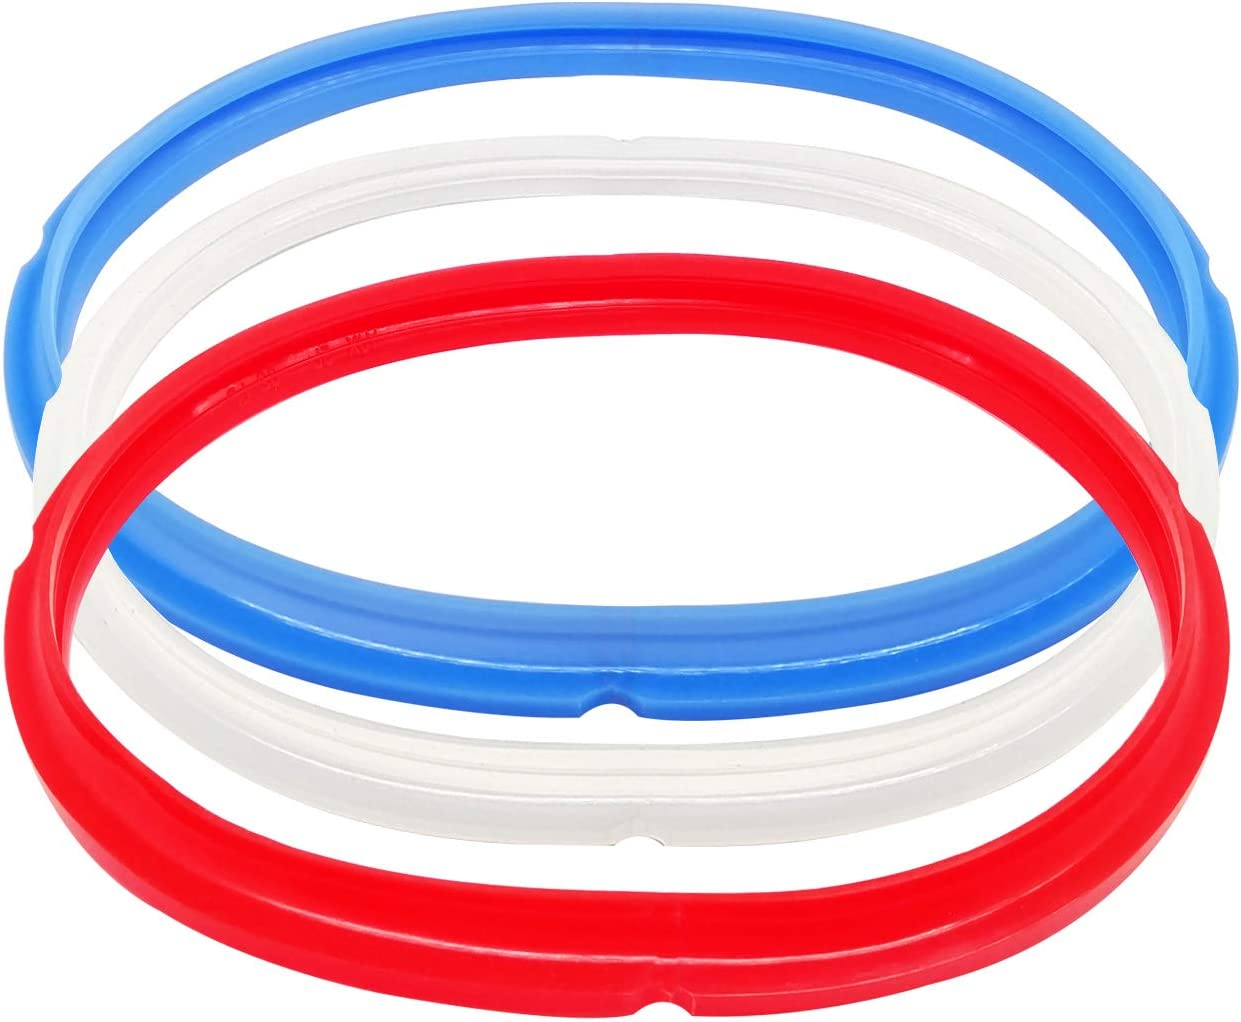 3Pack Sealing Ring-Perfect Accessory for cooker-Pressure quality assurance Outstanding 6Qt c 5